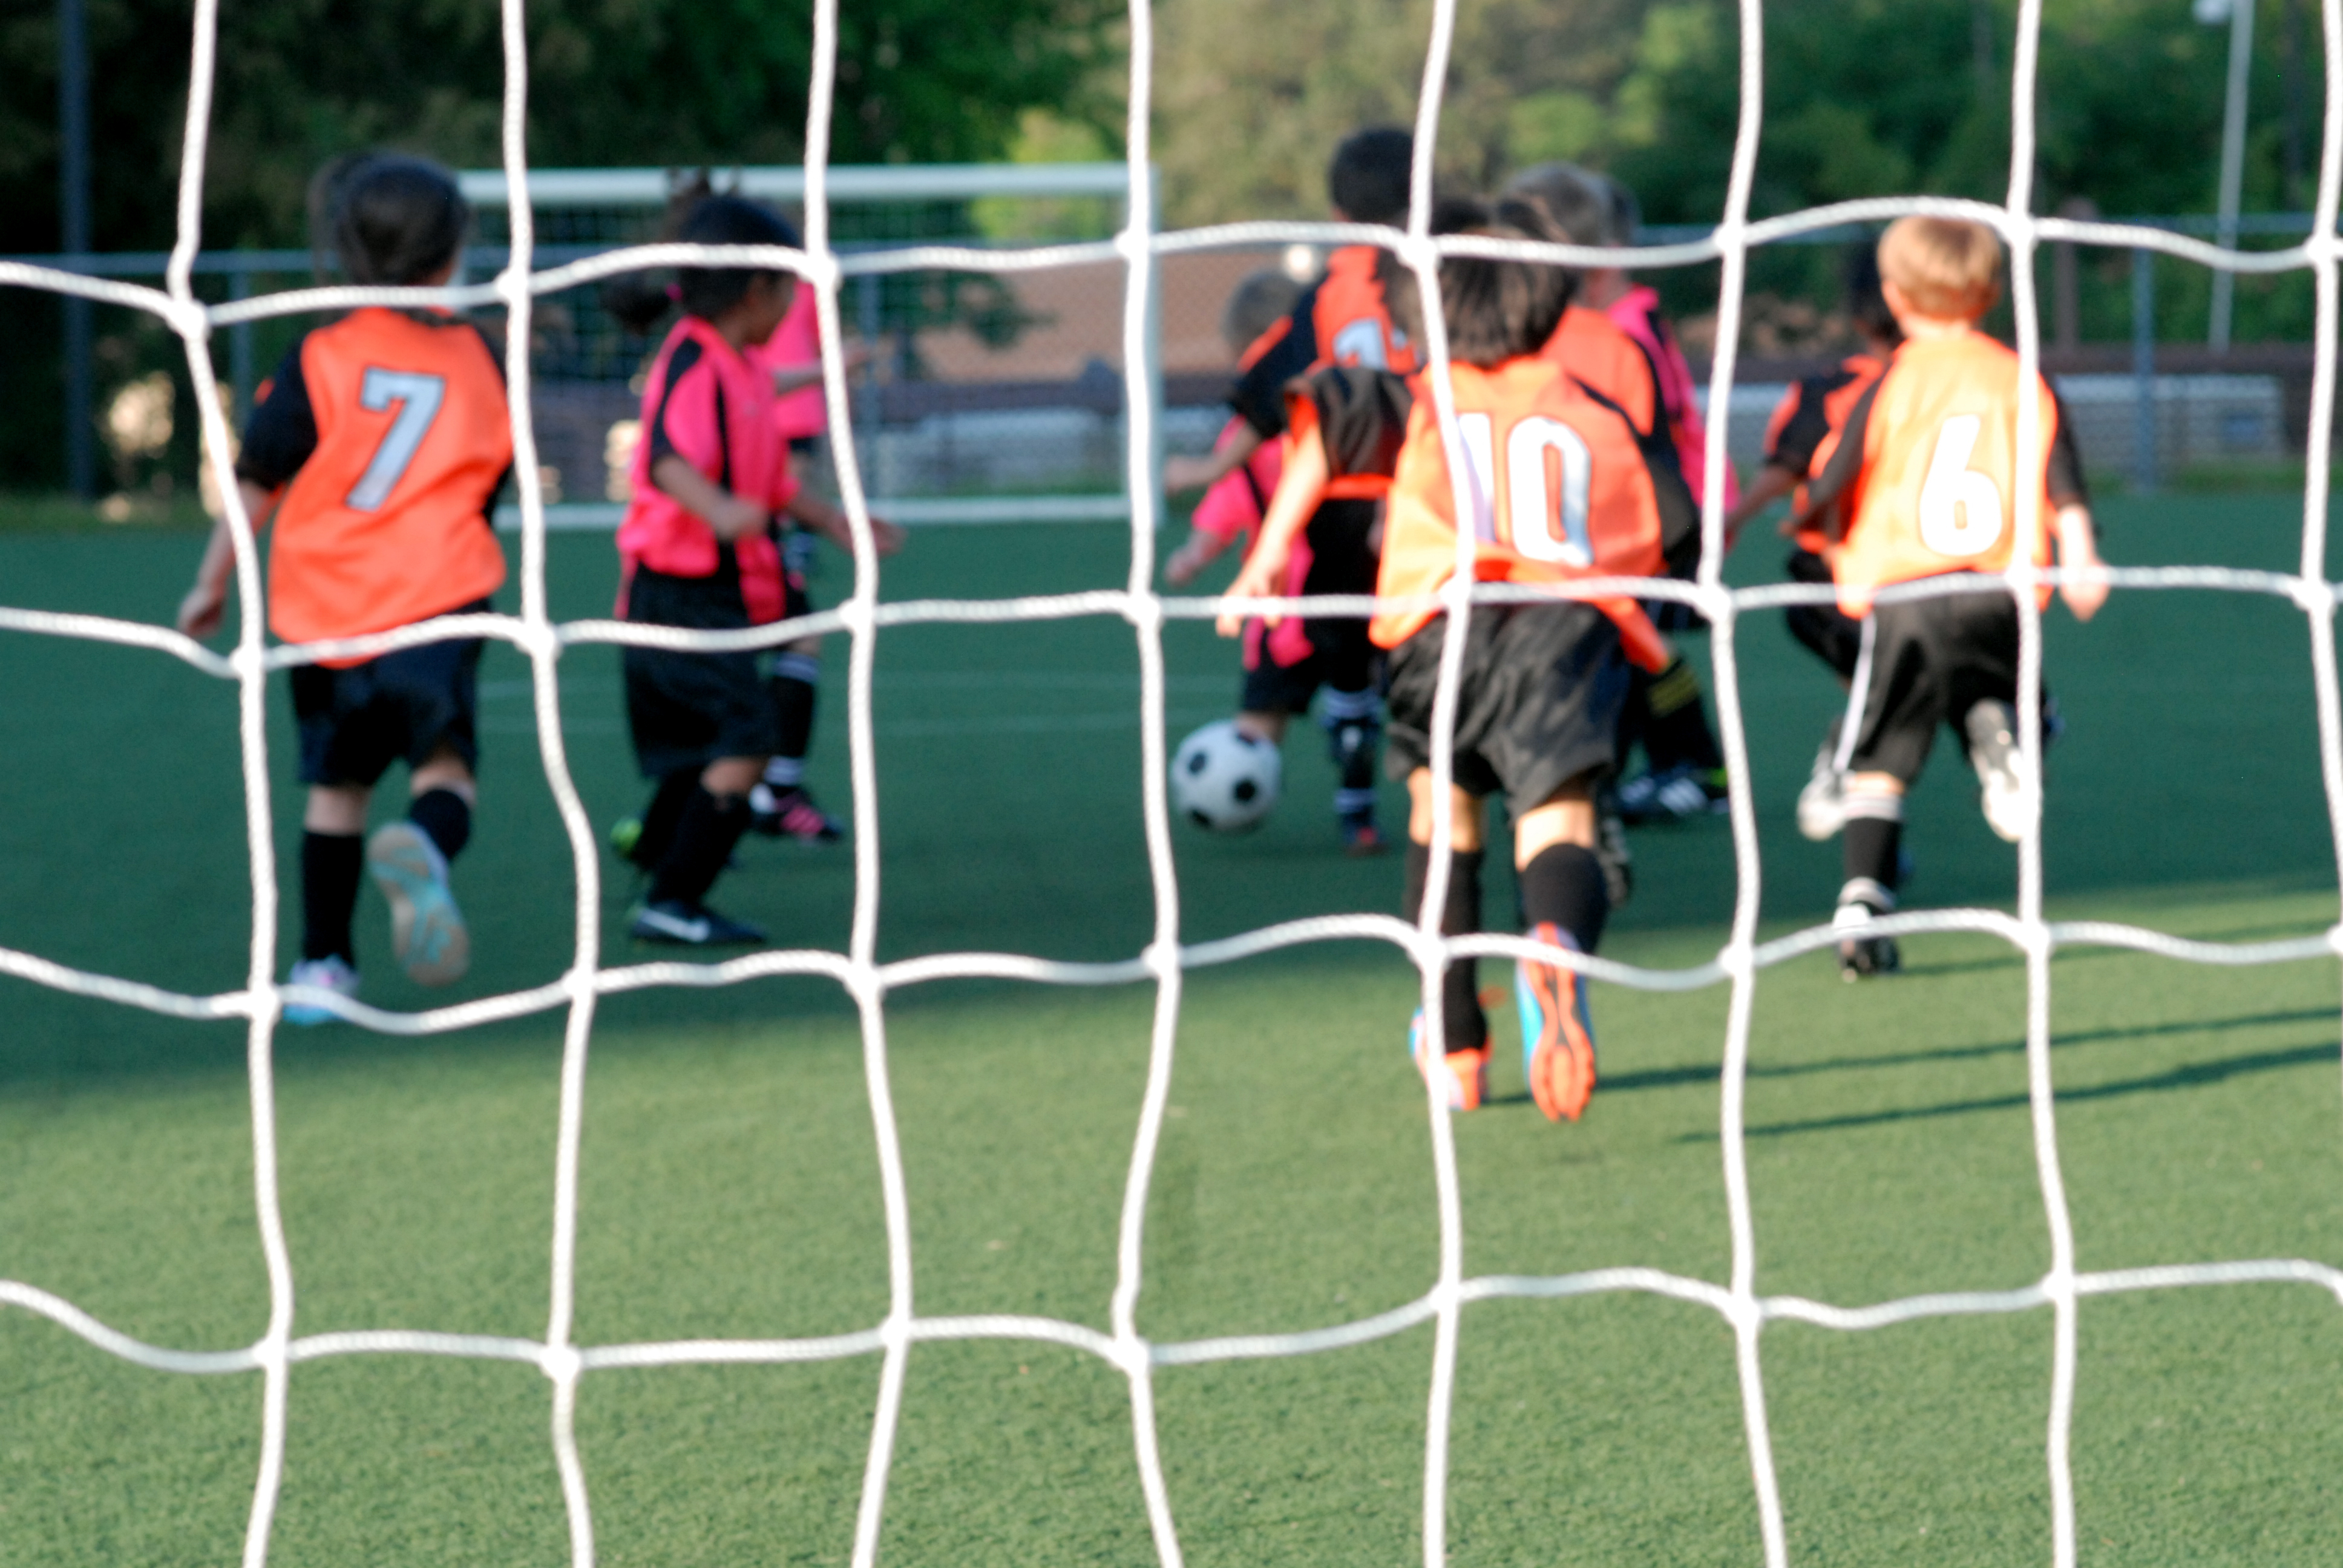 Everman Soccer Academy Camp: June 4th – 8th